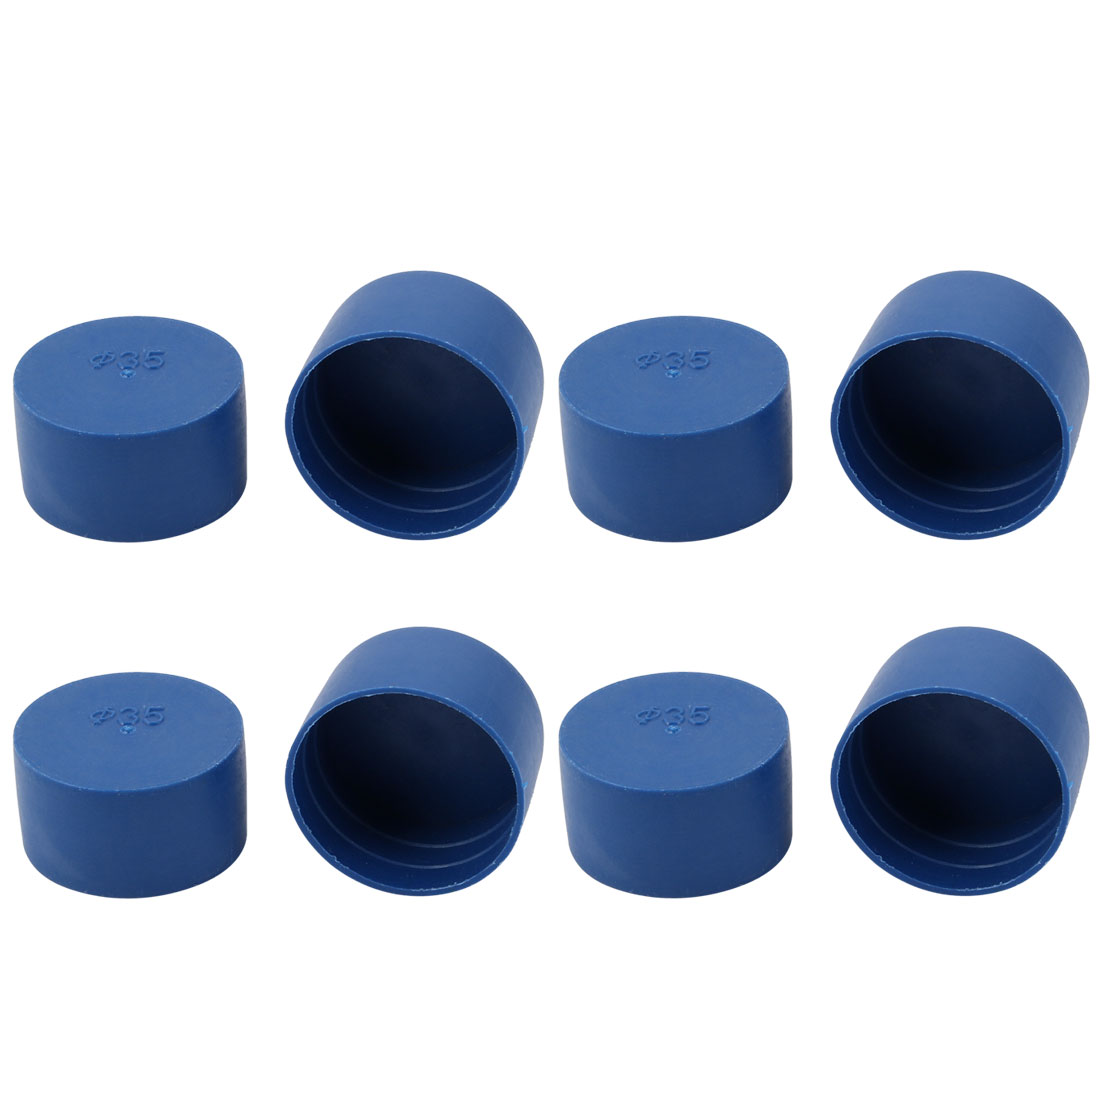 8pcs 35mm Inner Dia PE Plastic End Cap Bolt Thread Protector Tube Cover Blue